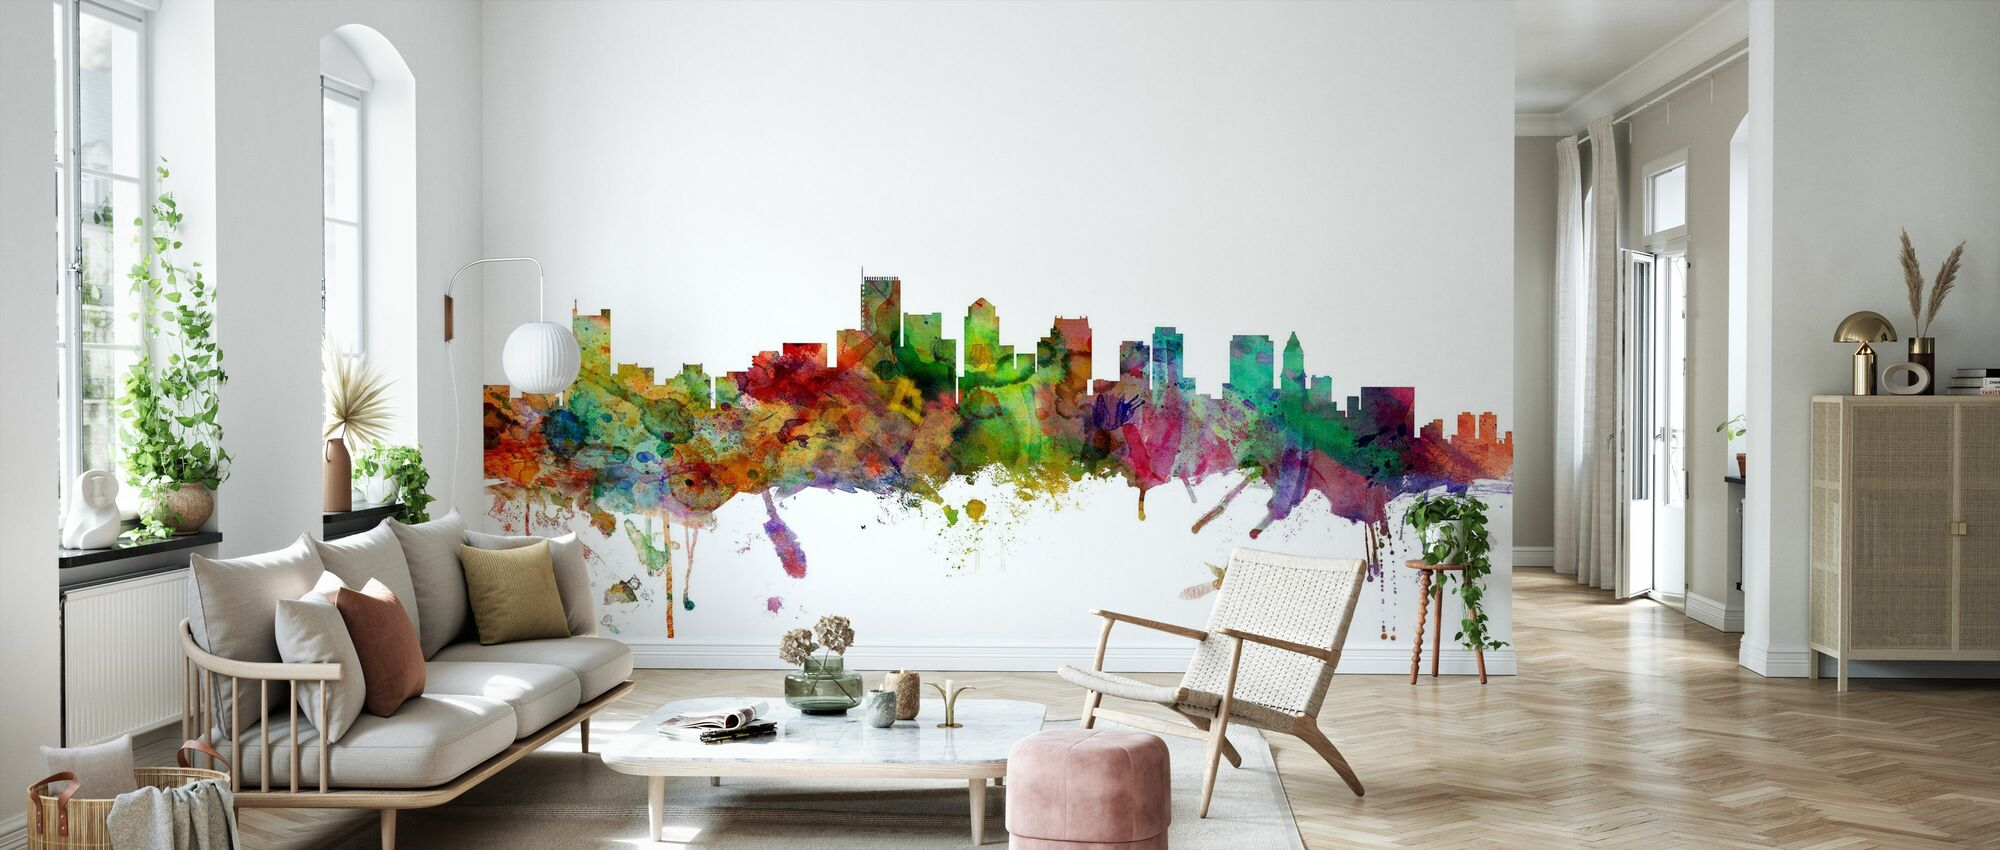 Boston Massachusetts Skyline - Behang - Woonkamer